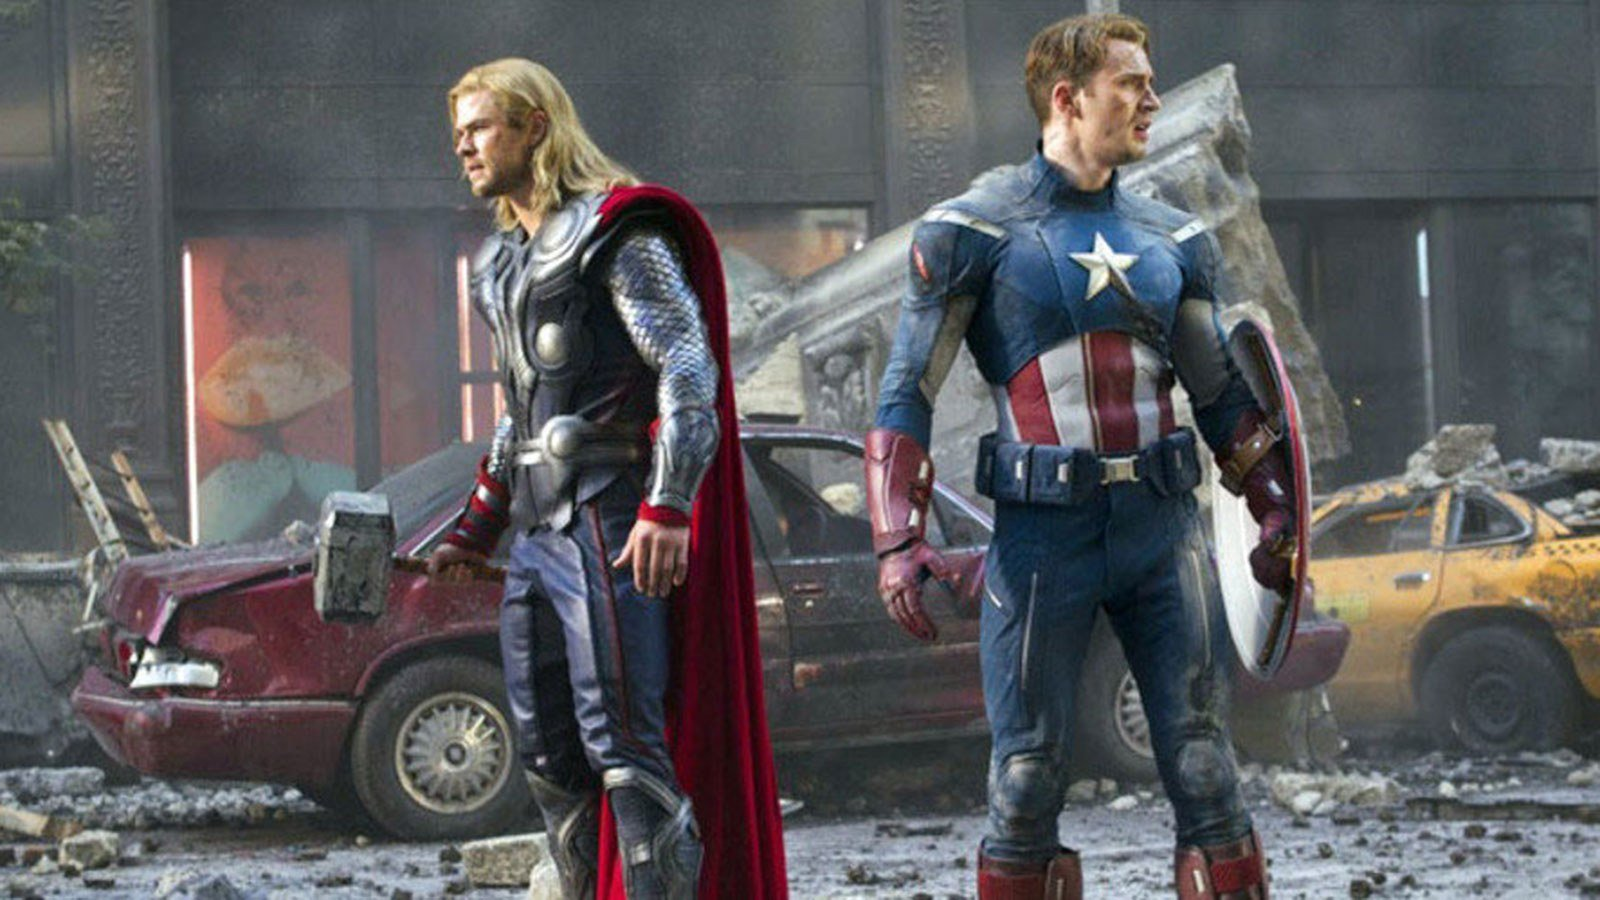 'The Avengers' Opening Tonight: 56 Grads Credited - Hero image